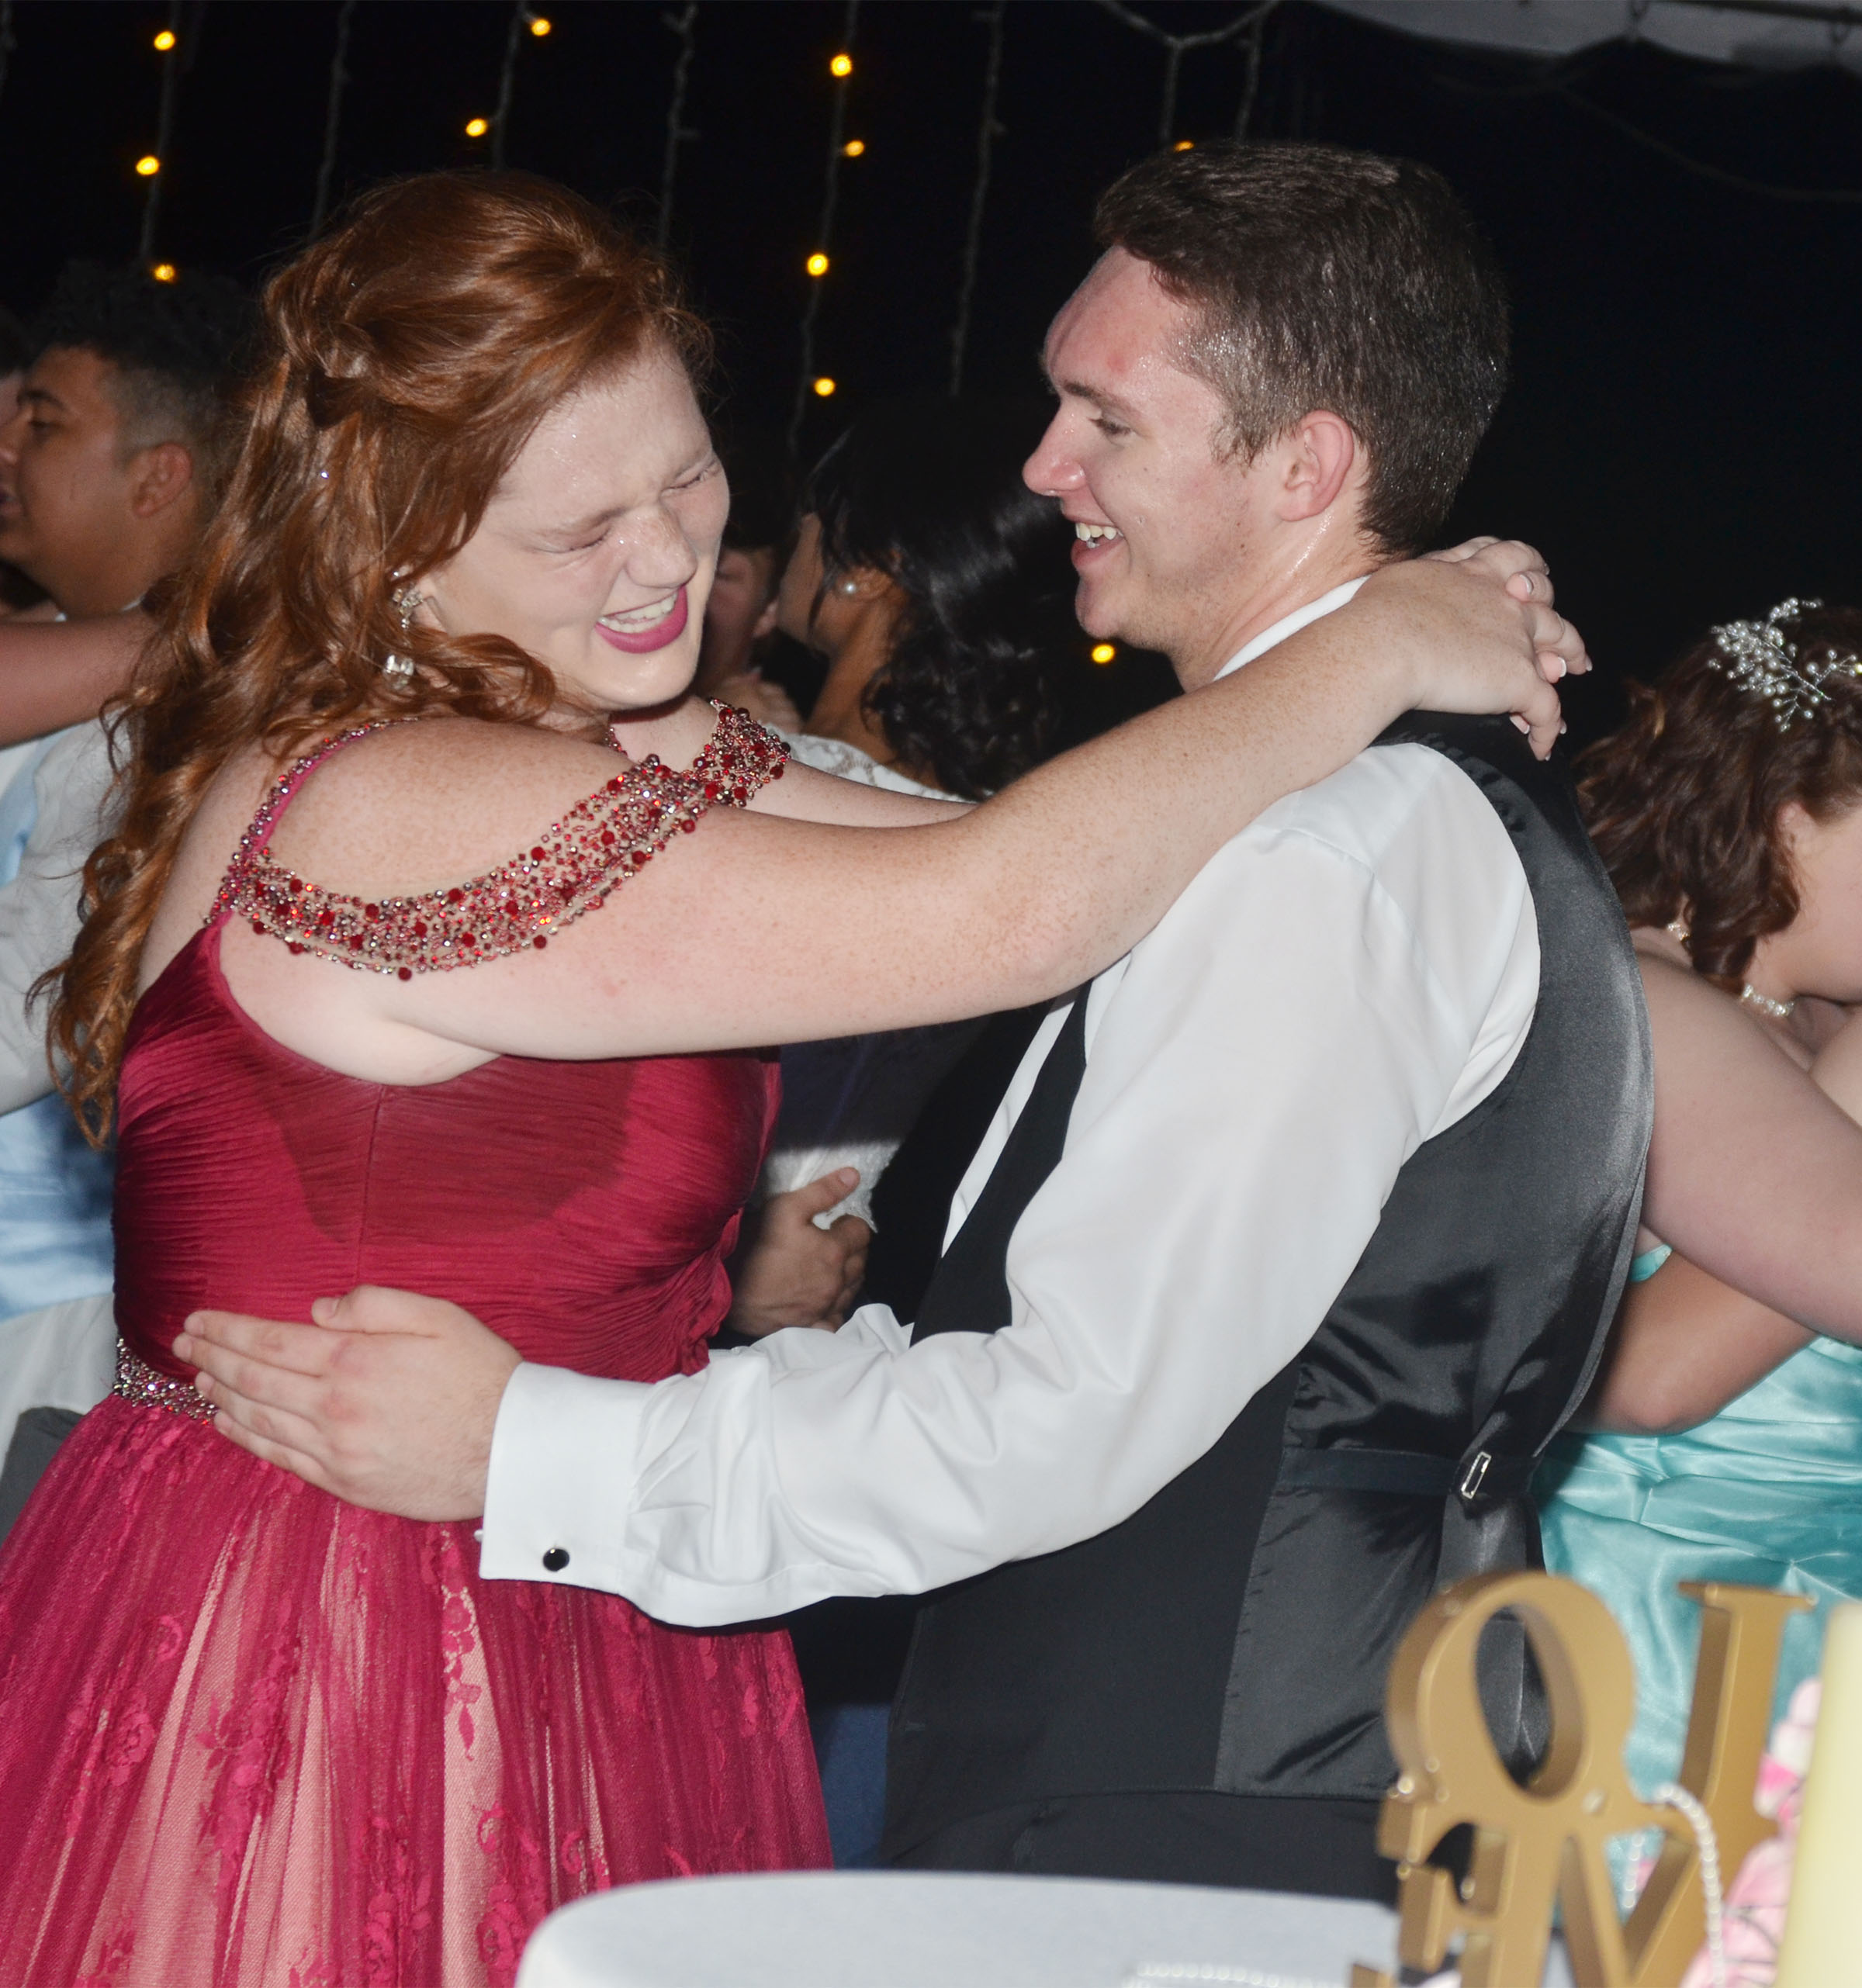 CHS senior Mallory Haley and Gatton Academy student Samuel Kessler share a laugh at prom.